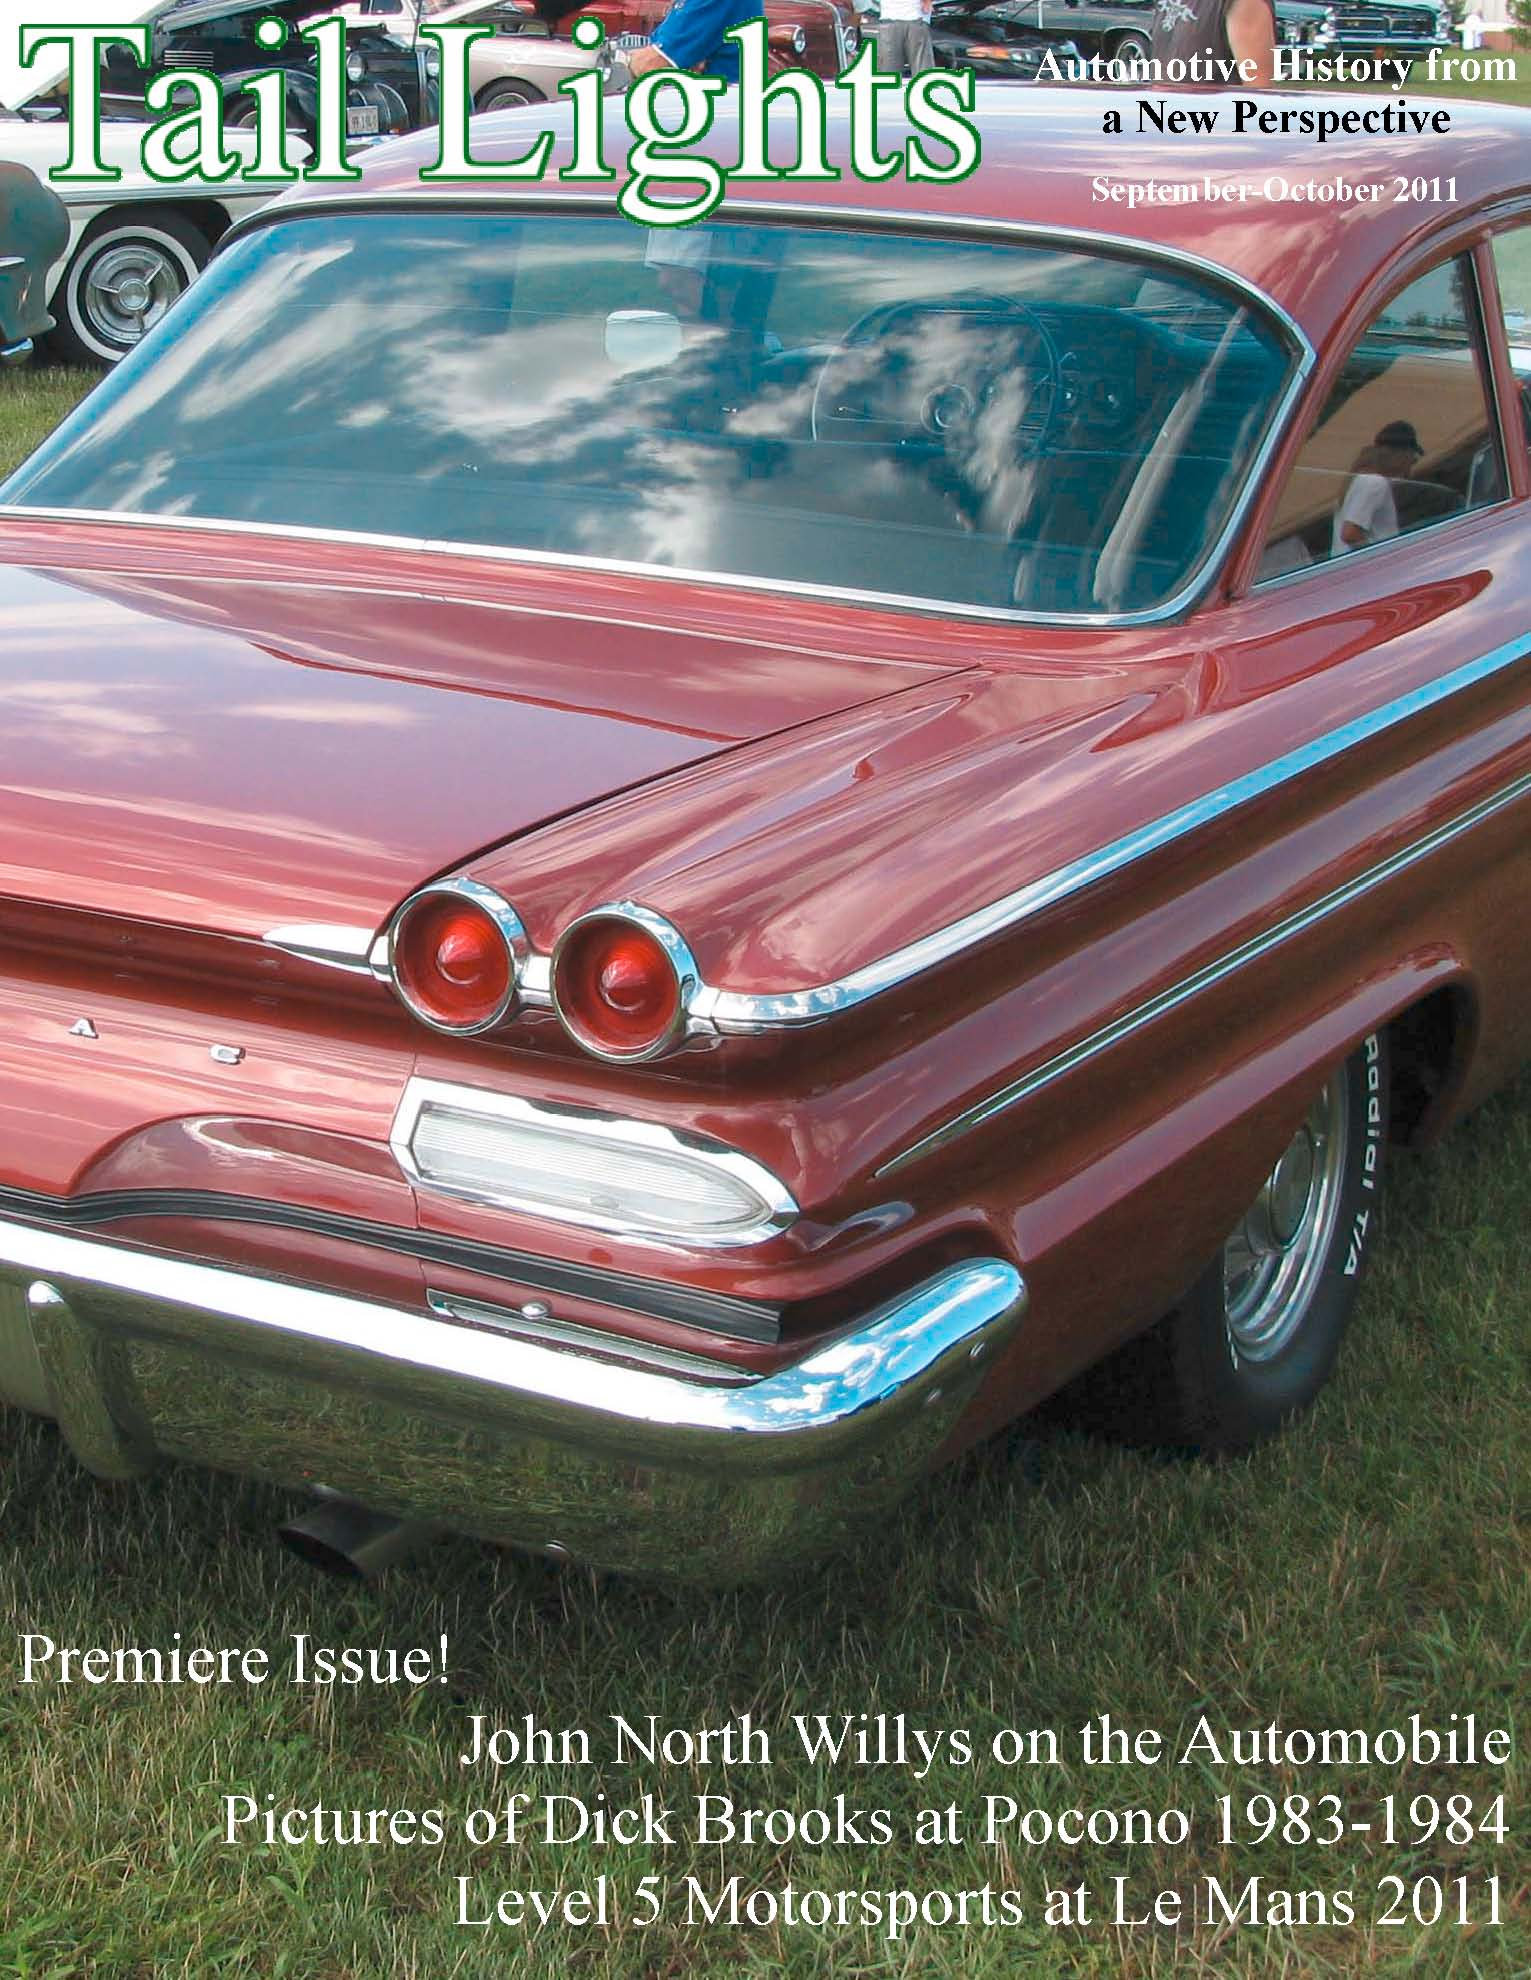 Pontiac Catalina The Crittenden Automotive Library 1960 Bonneville Station Wagon View Tail Lights Cover 323kb